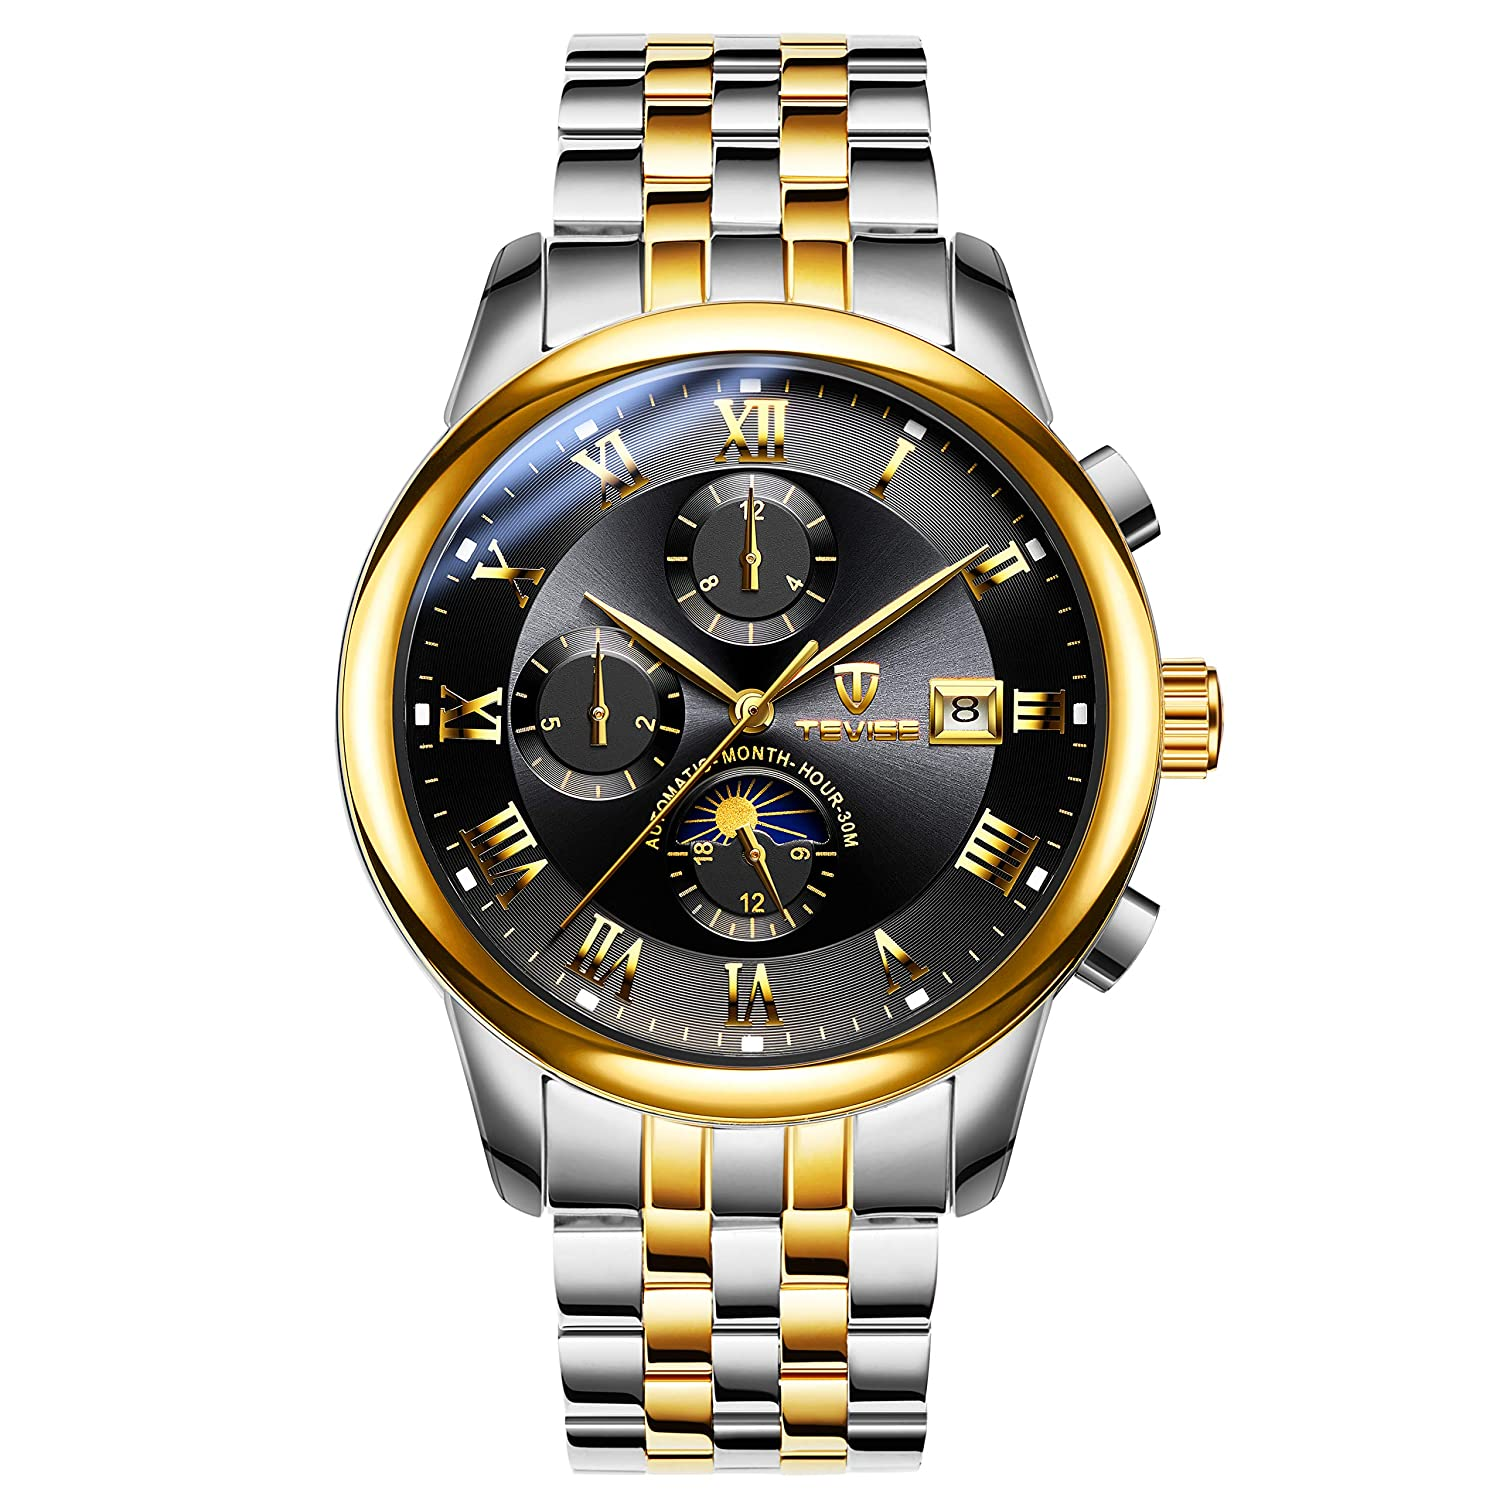 TEVISE Mens Watch Automatic Mechanical Wristwatch Luxury Fashionable Classic